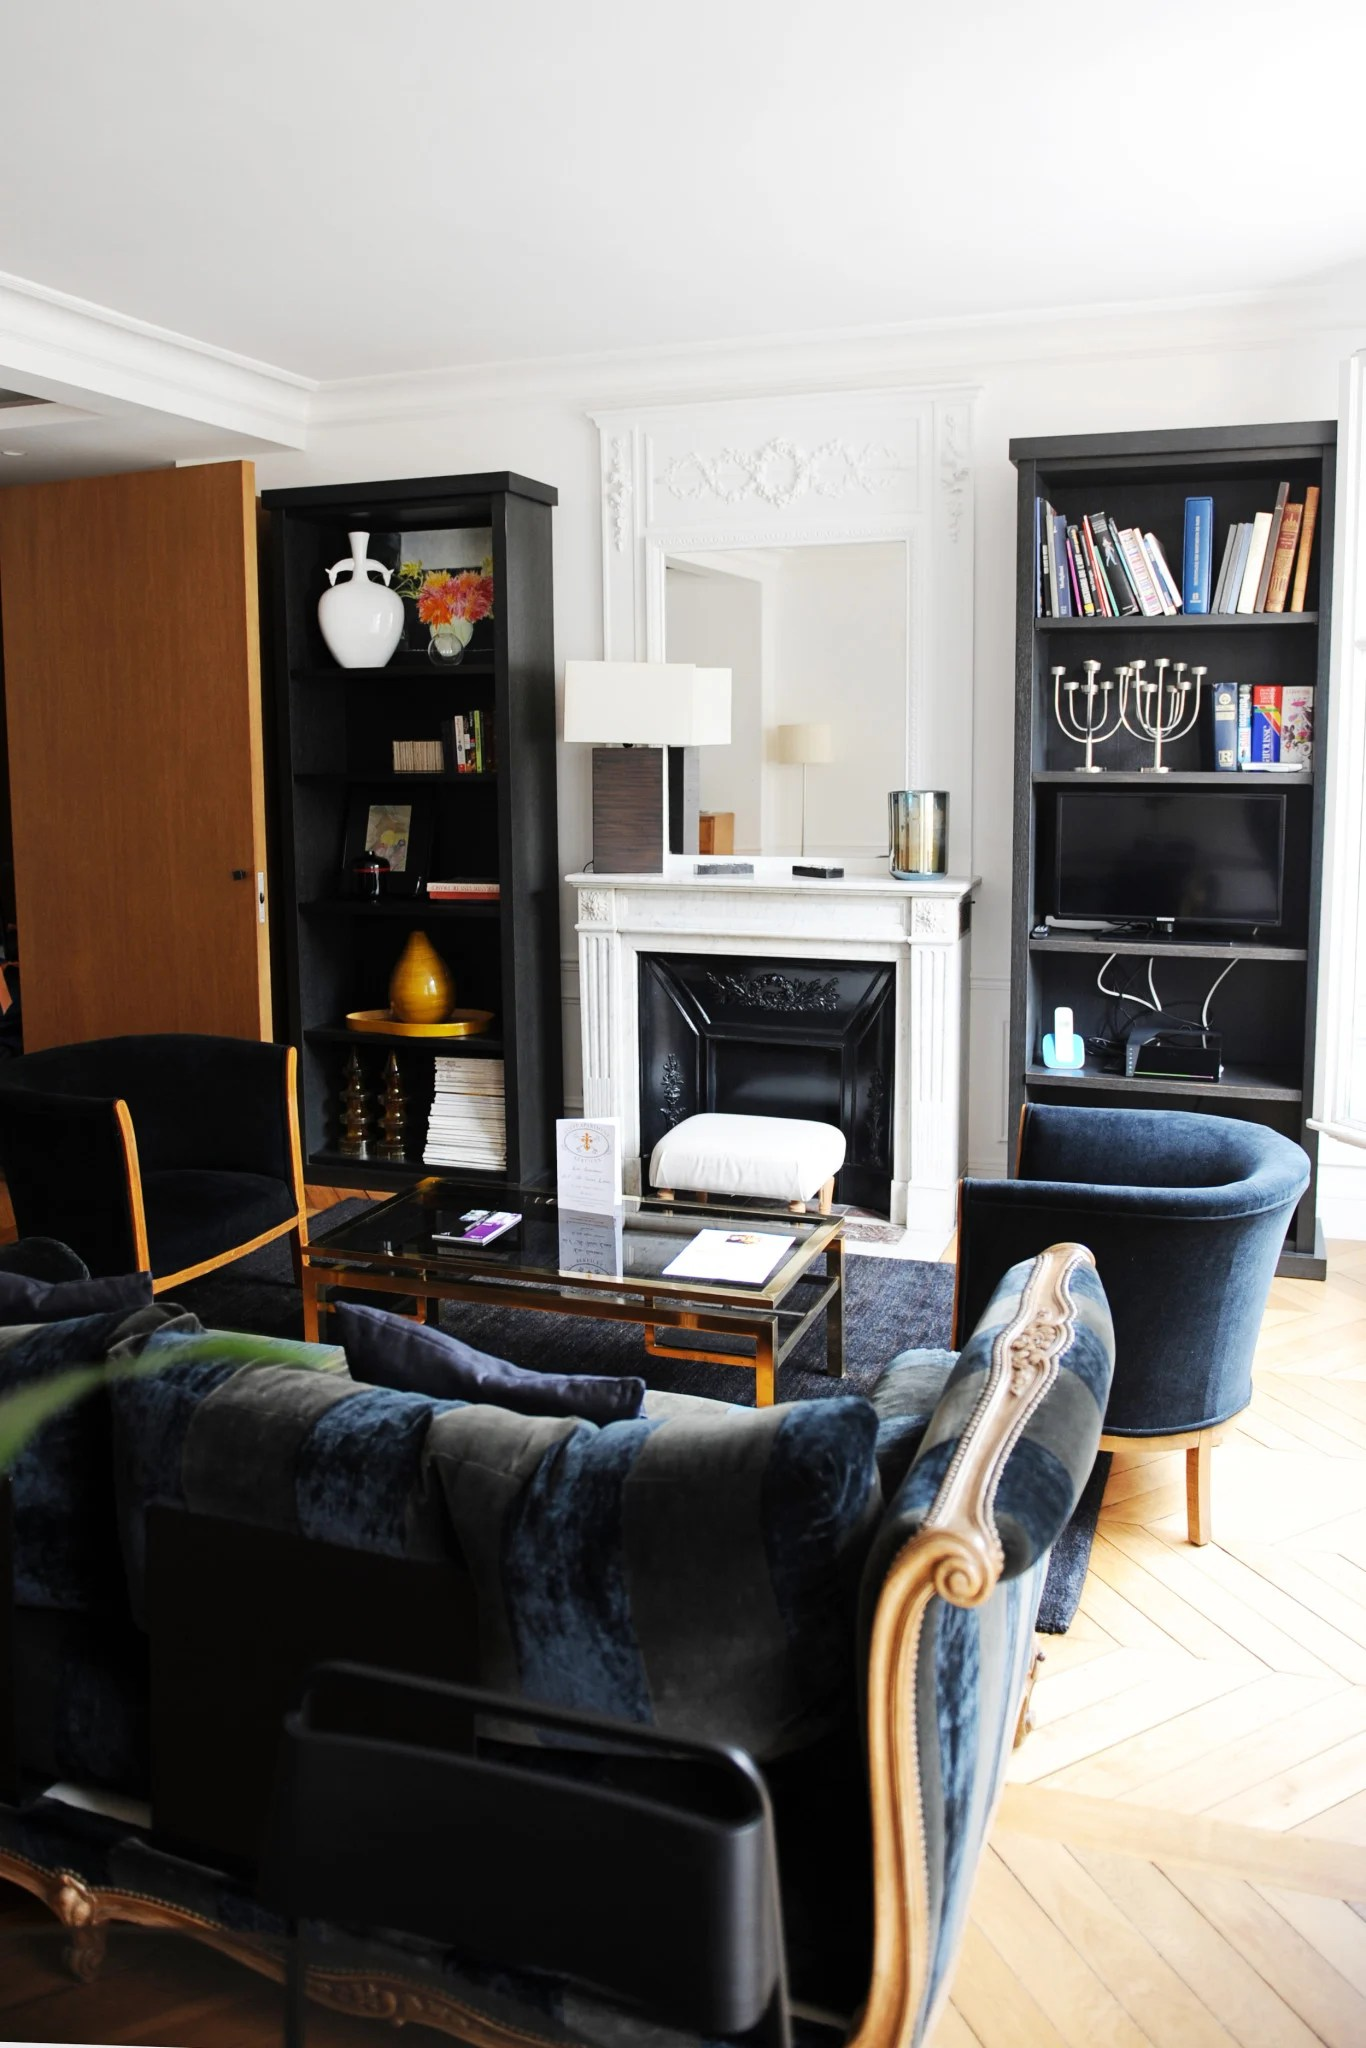 Where to Stay in Paris : Guest Apartment Services and the Ile Saint-Louis